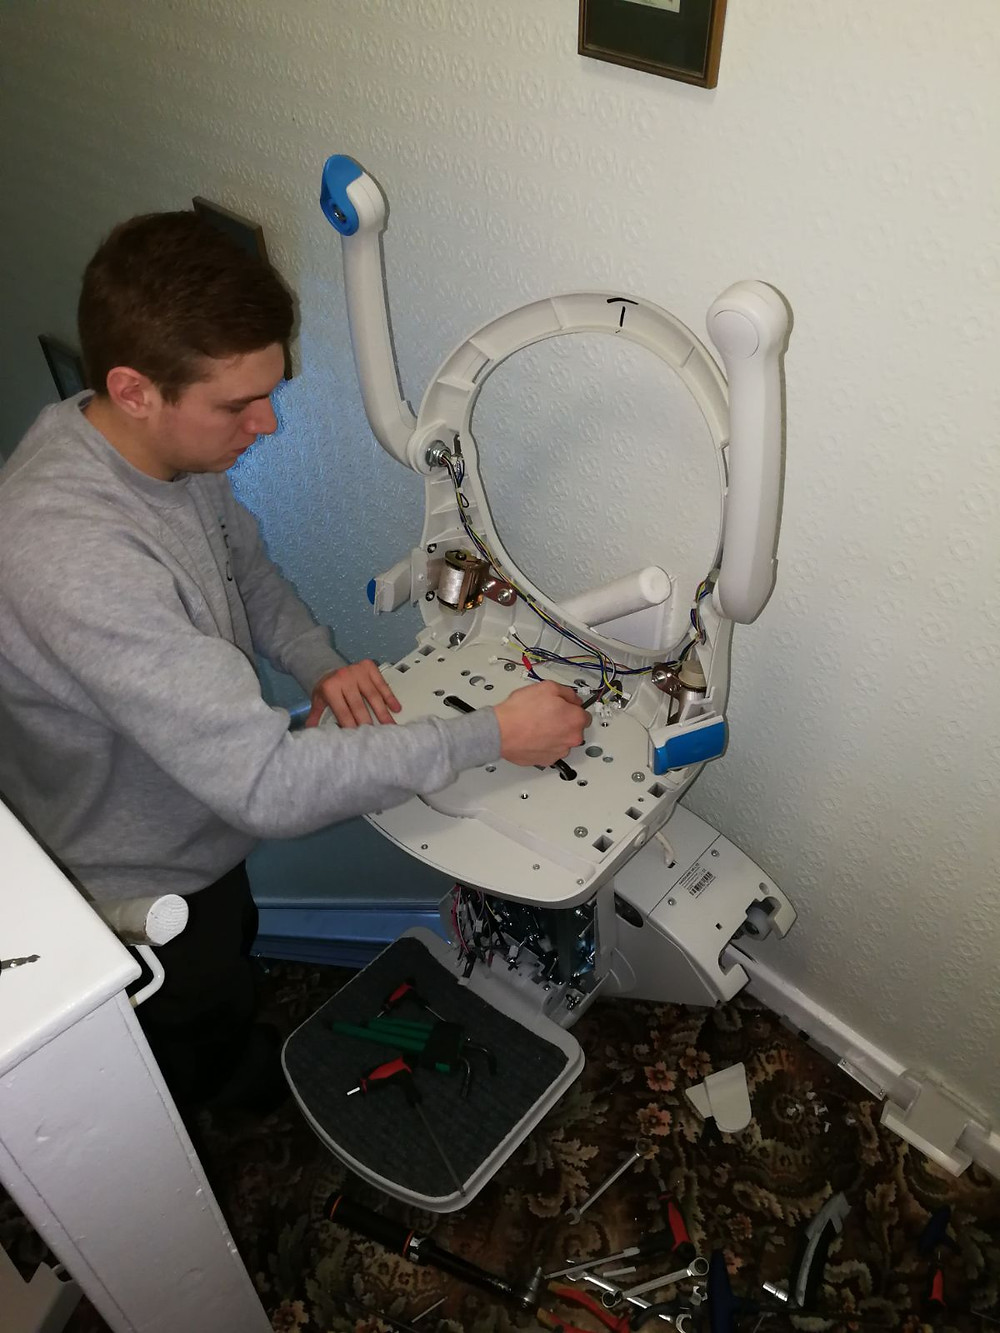 Stairlift repair by Candor Care